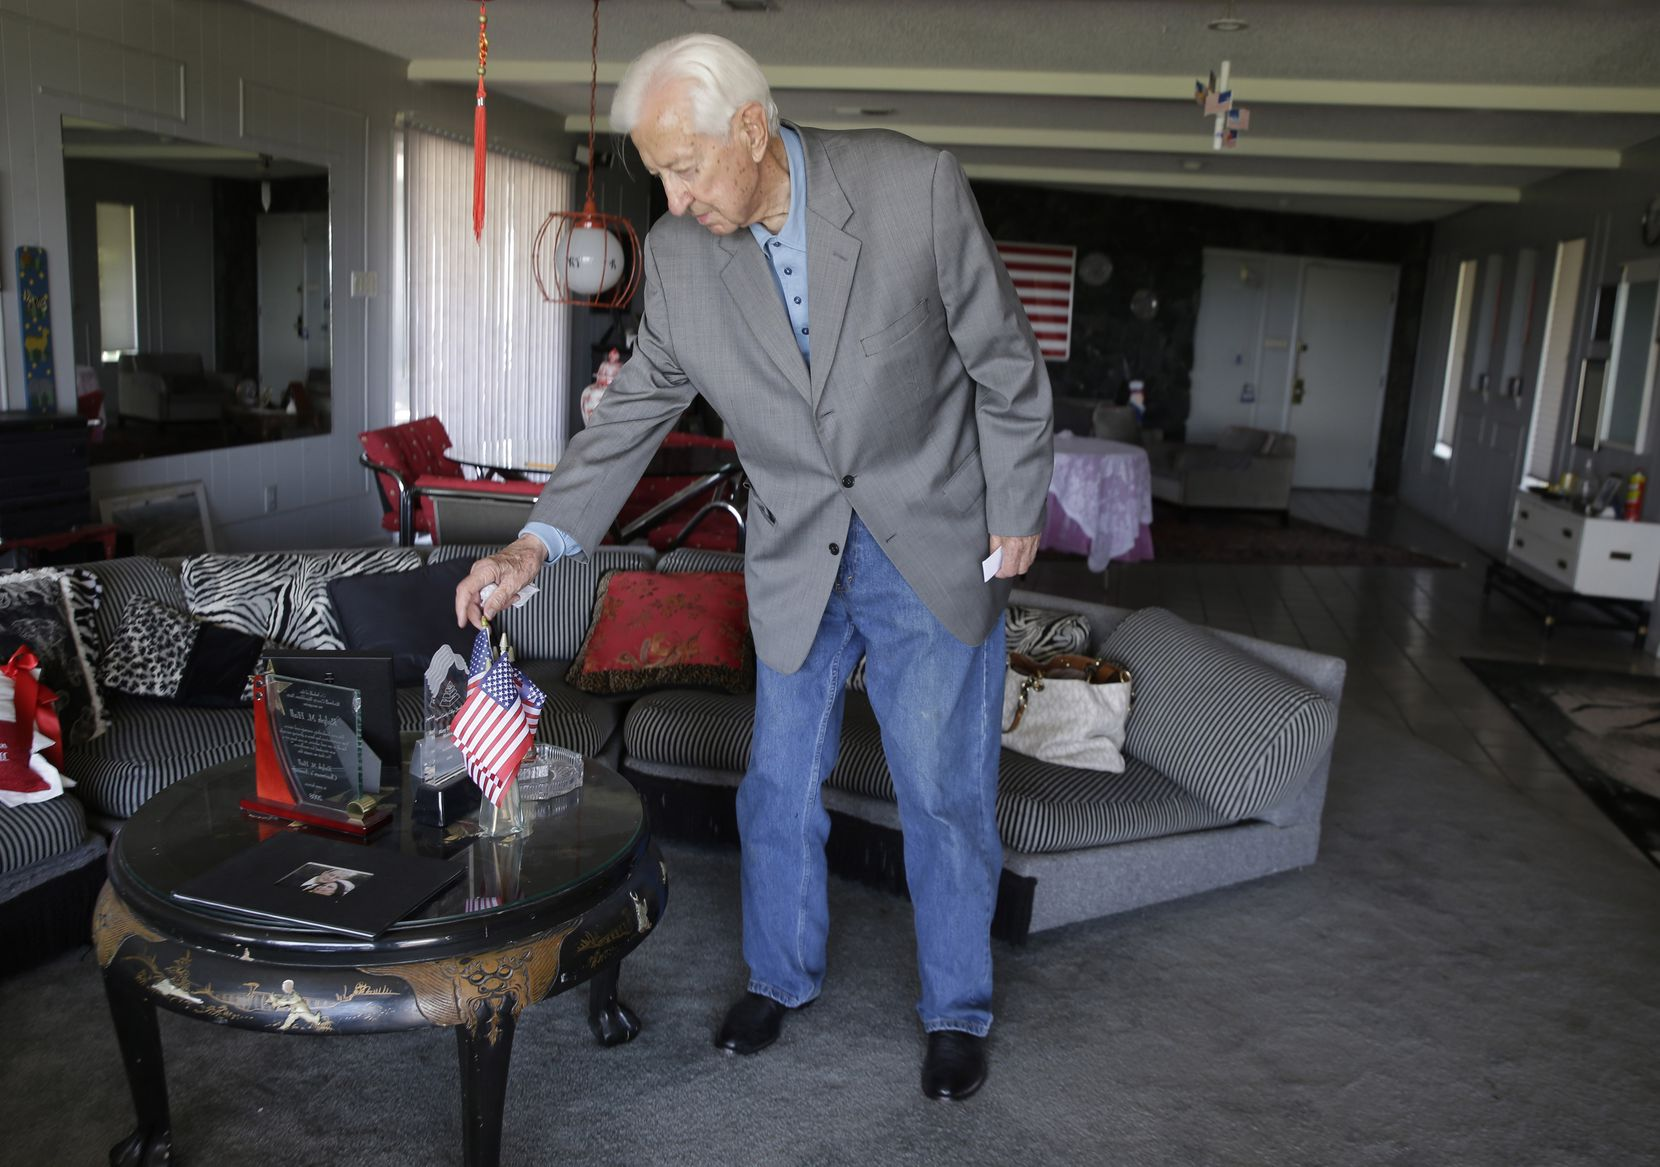 Rep. Ralph Hall adjusted miniature American flags on a coffee table at his home in Rockwall in May, 2014.